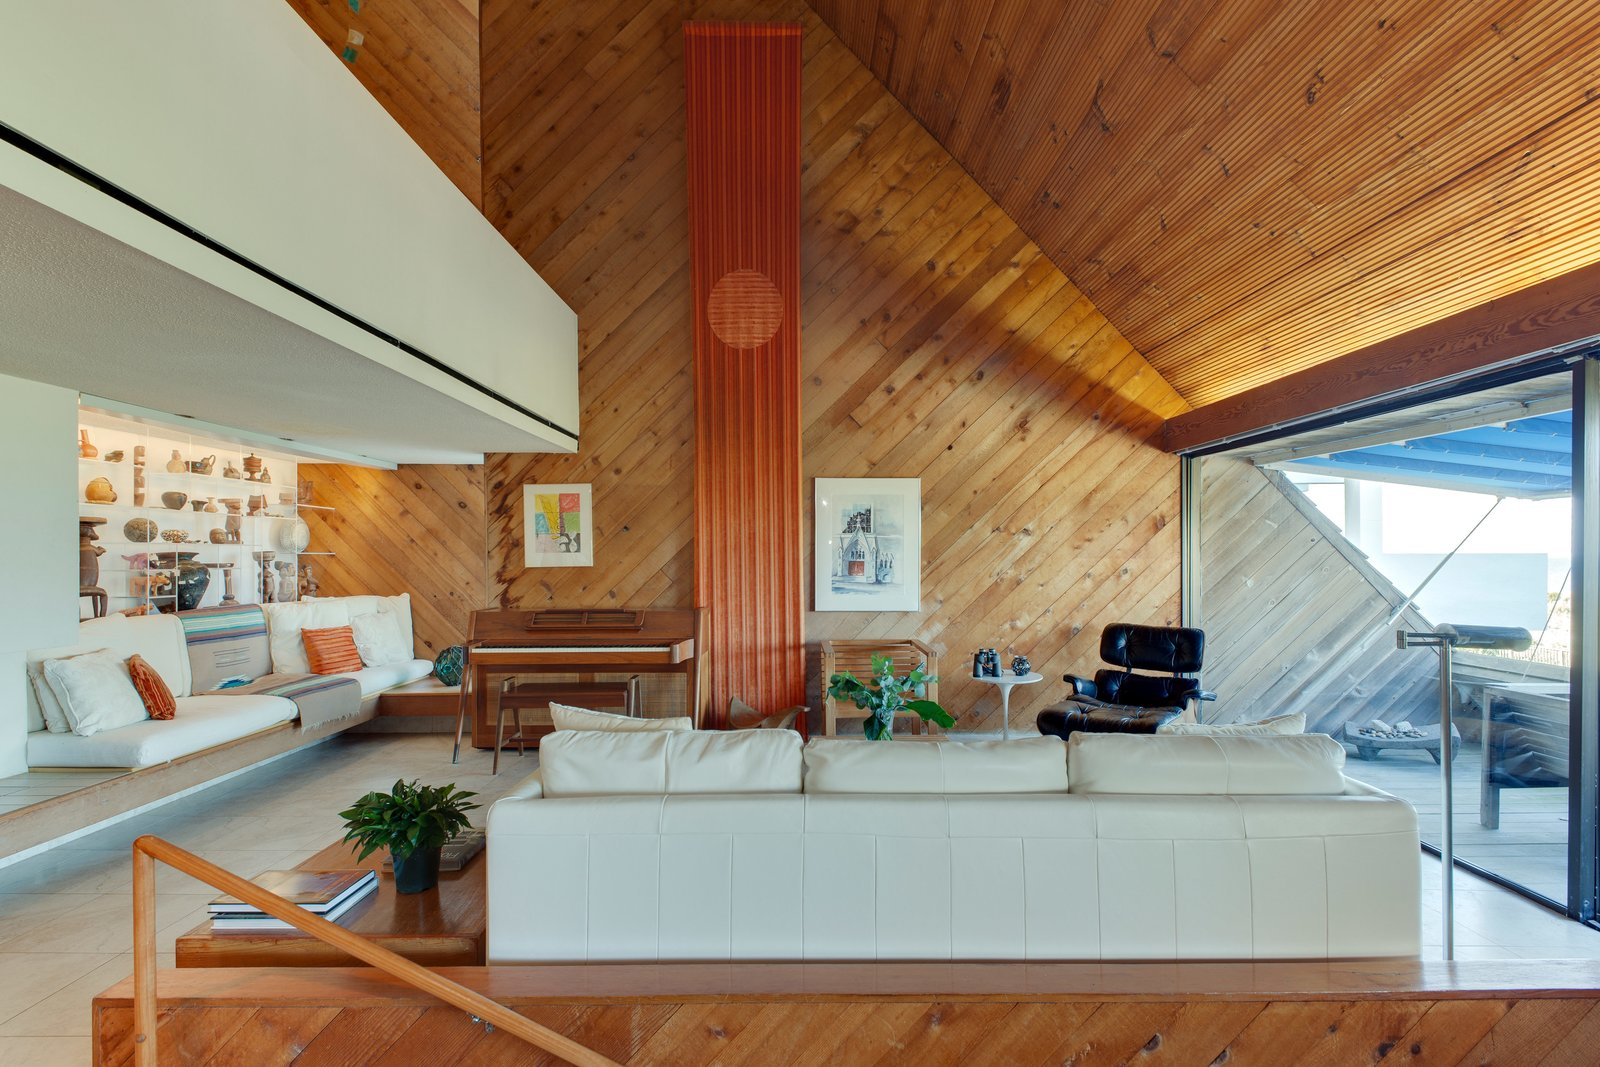 Living Room, Sofa, and Chair  Photo 8 of 13 in A Renowned Florida Architect's Geometric Family Home Hits the Market For the First Time